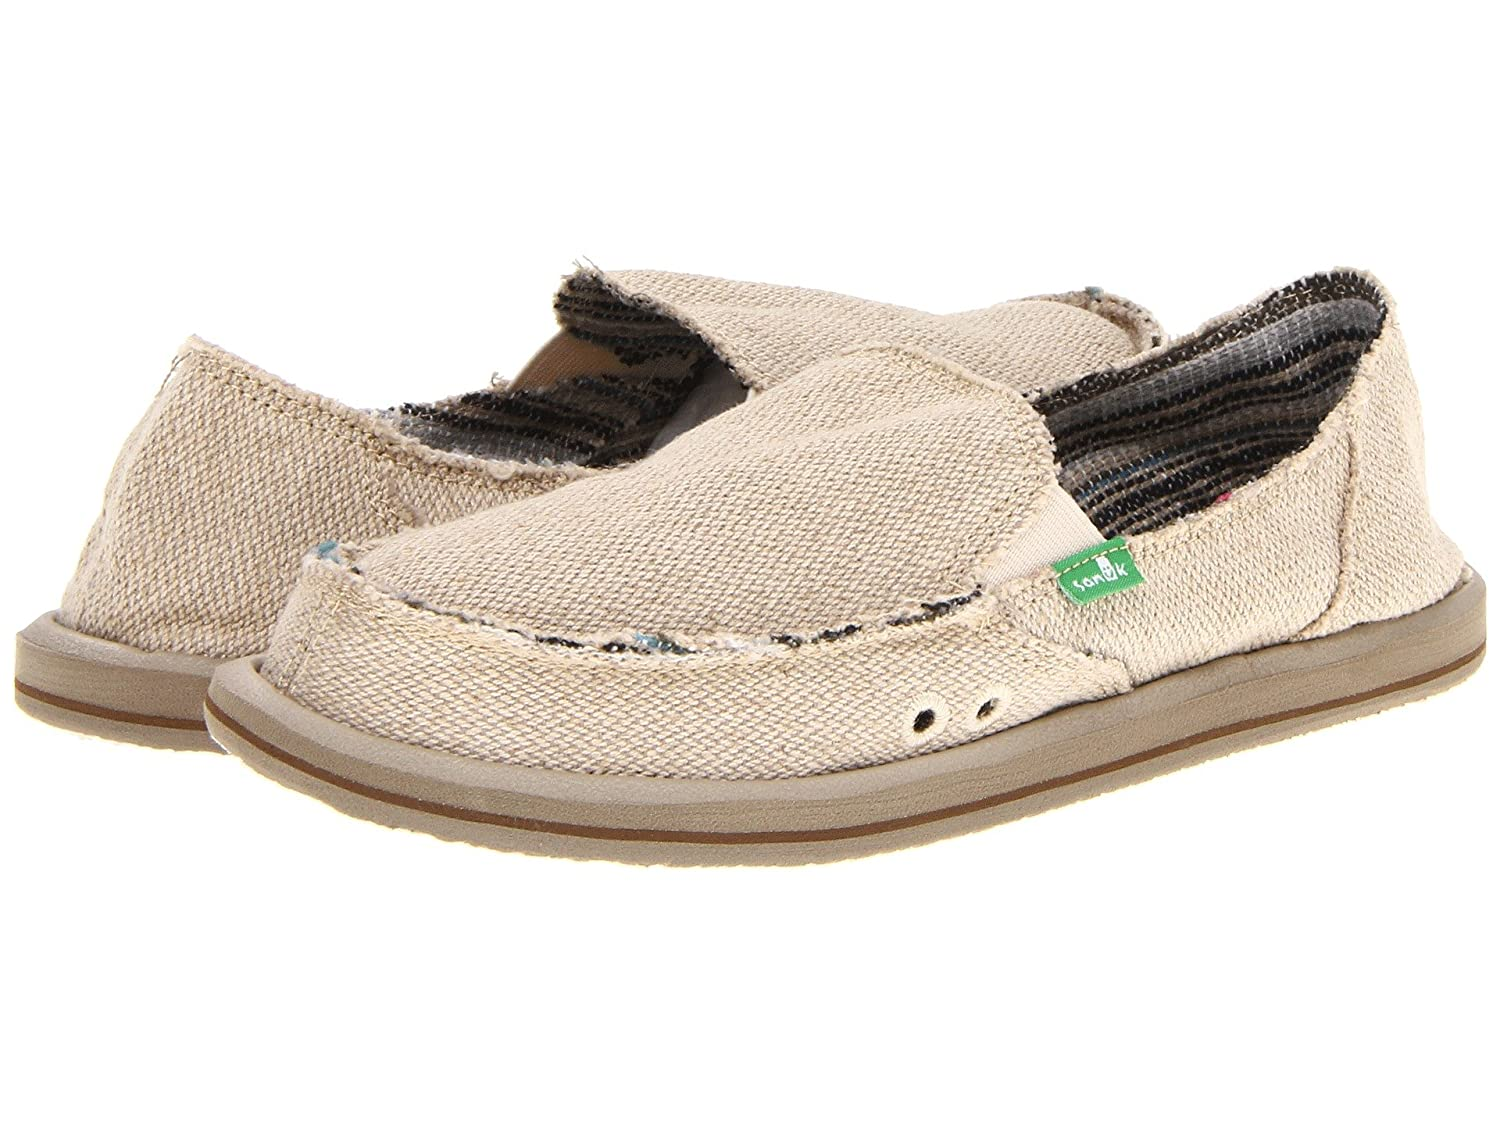 Sanuk Women's Donna Hemp Flat B06Y1TXD2X 5 B(M) US|Natural